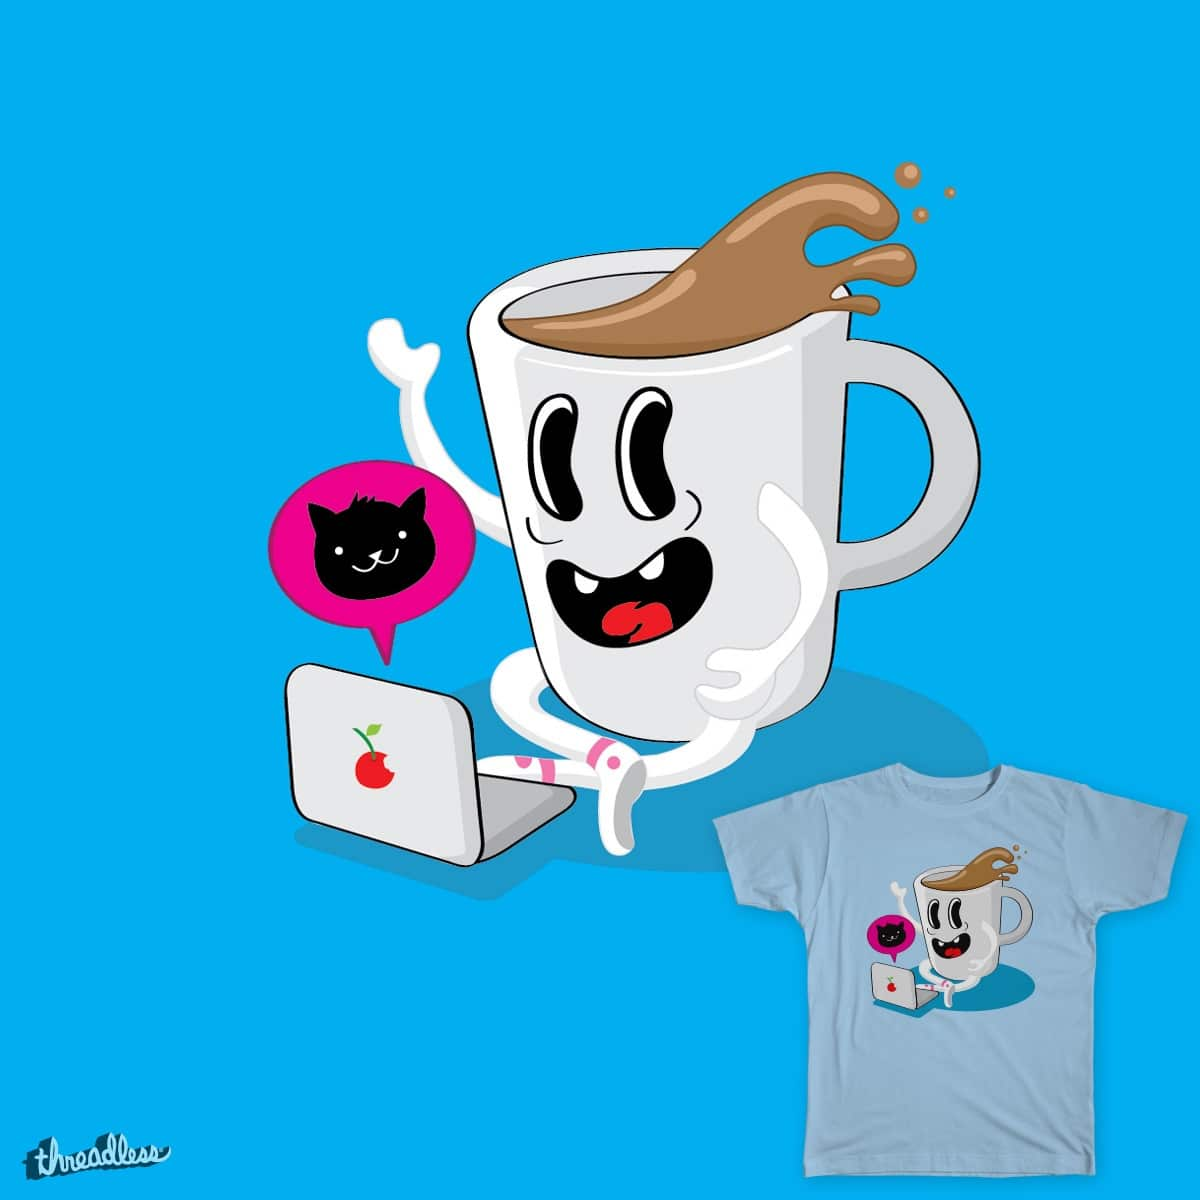 MugsyLovesCats by guillo80 on Threadless